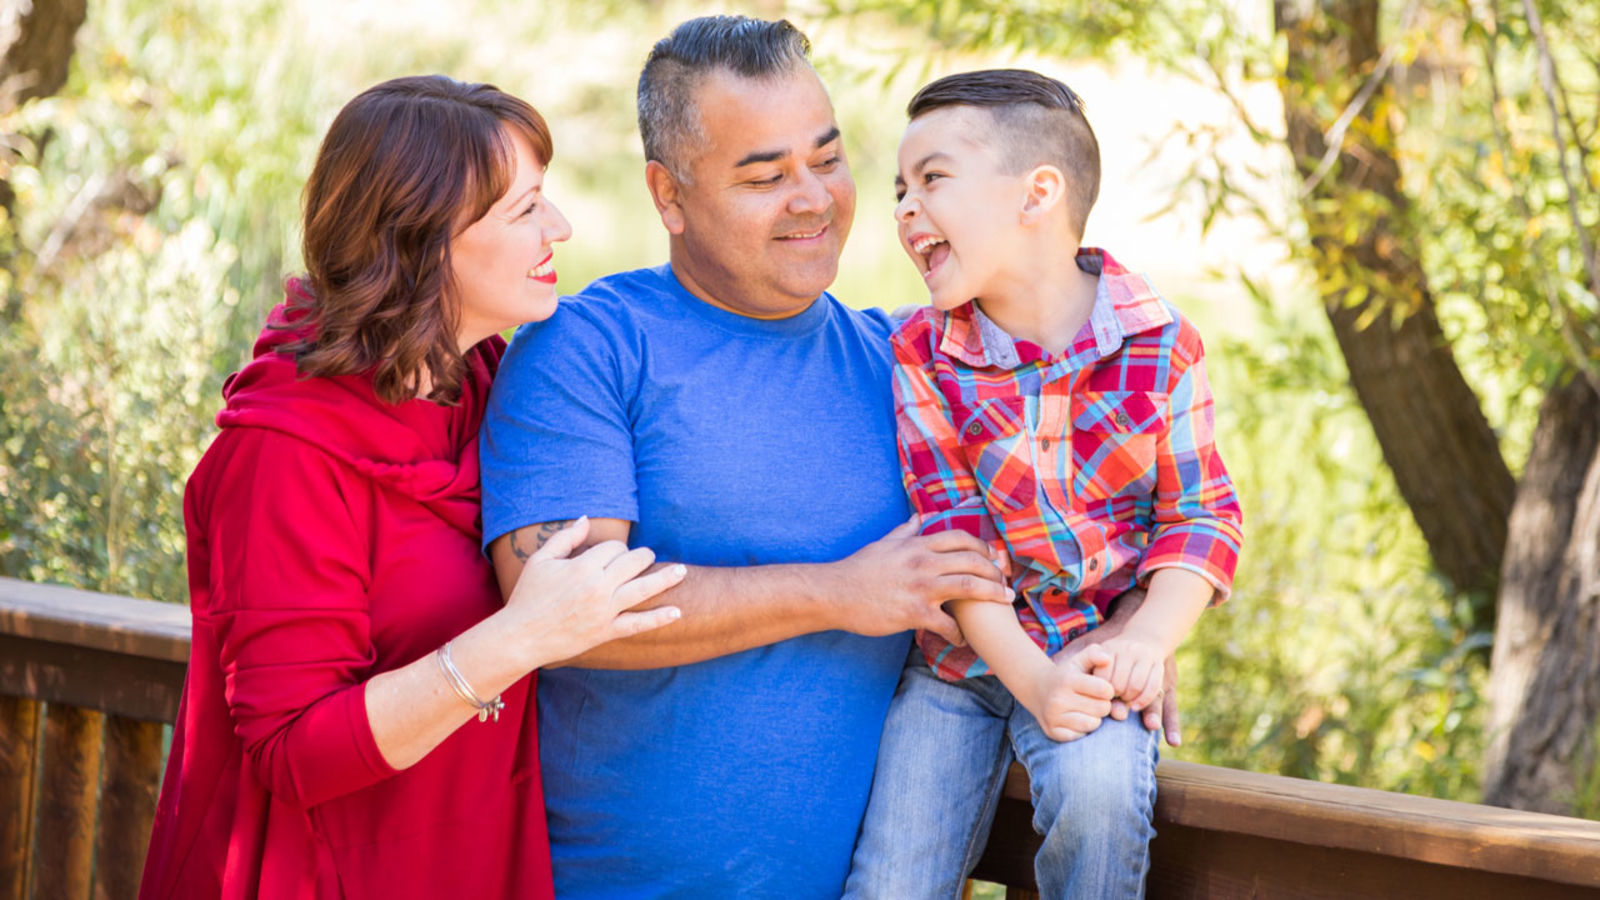 More minority families needed to adopt or foster children ...